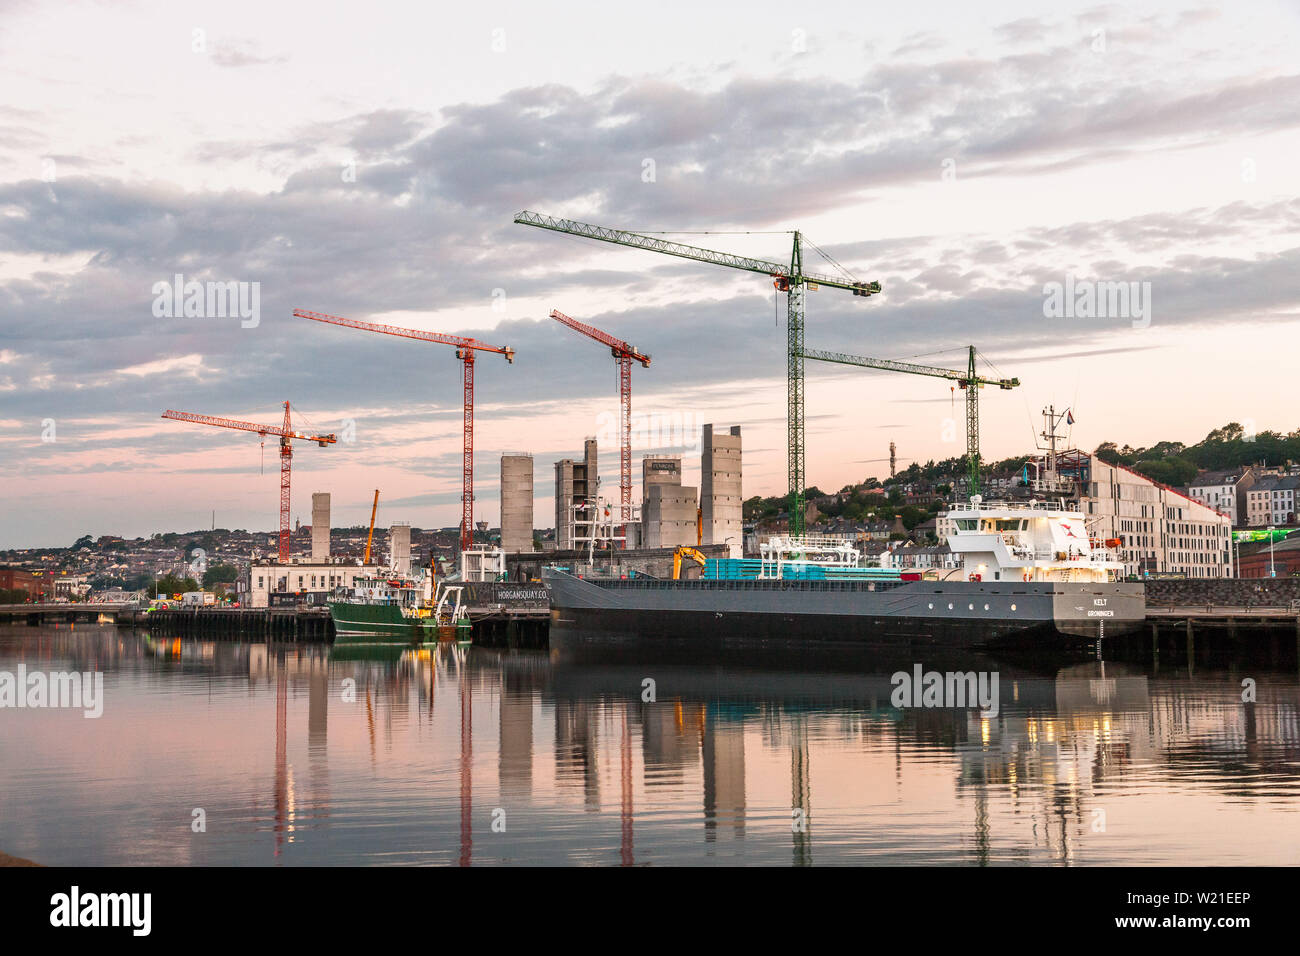 Cork City, Cork, Ireland. 05th July, 2019. A bright dry morning over the city as the general cargo ship Kelt unloads against a backdrop of new developments on Horgan's Quay and Penrose Wharf, Cork, Ireland.- Picture David Creedon / Anzenberger Credit: David Creedon/Alamy Live News - Stock Image